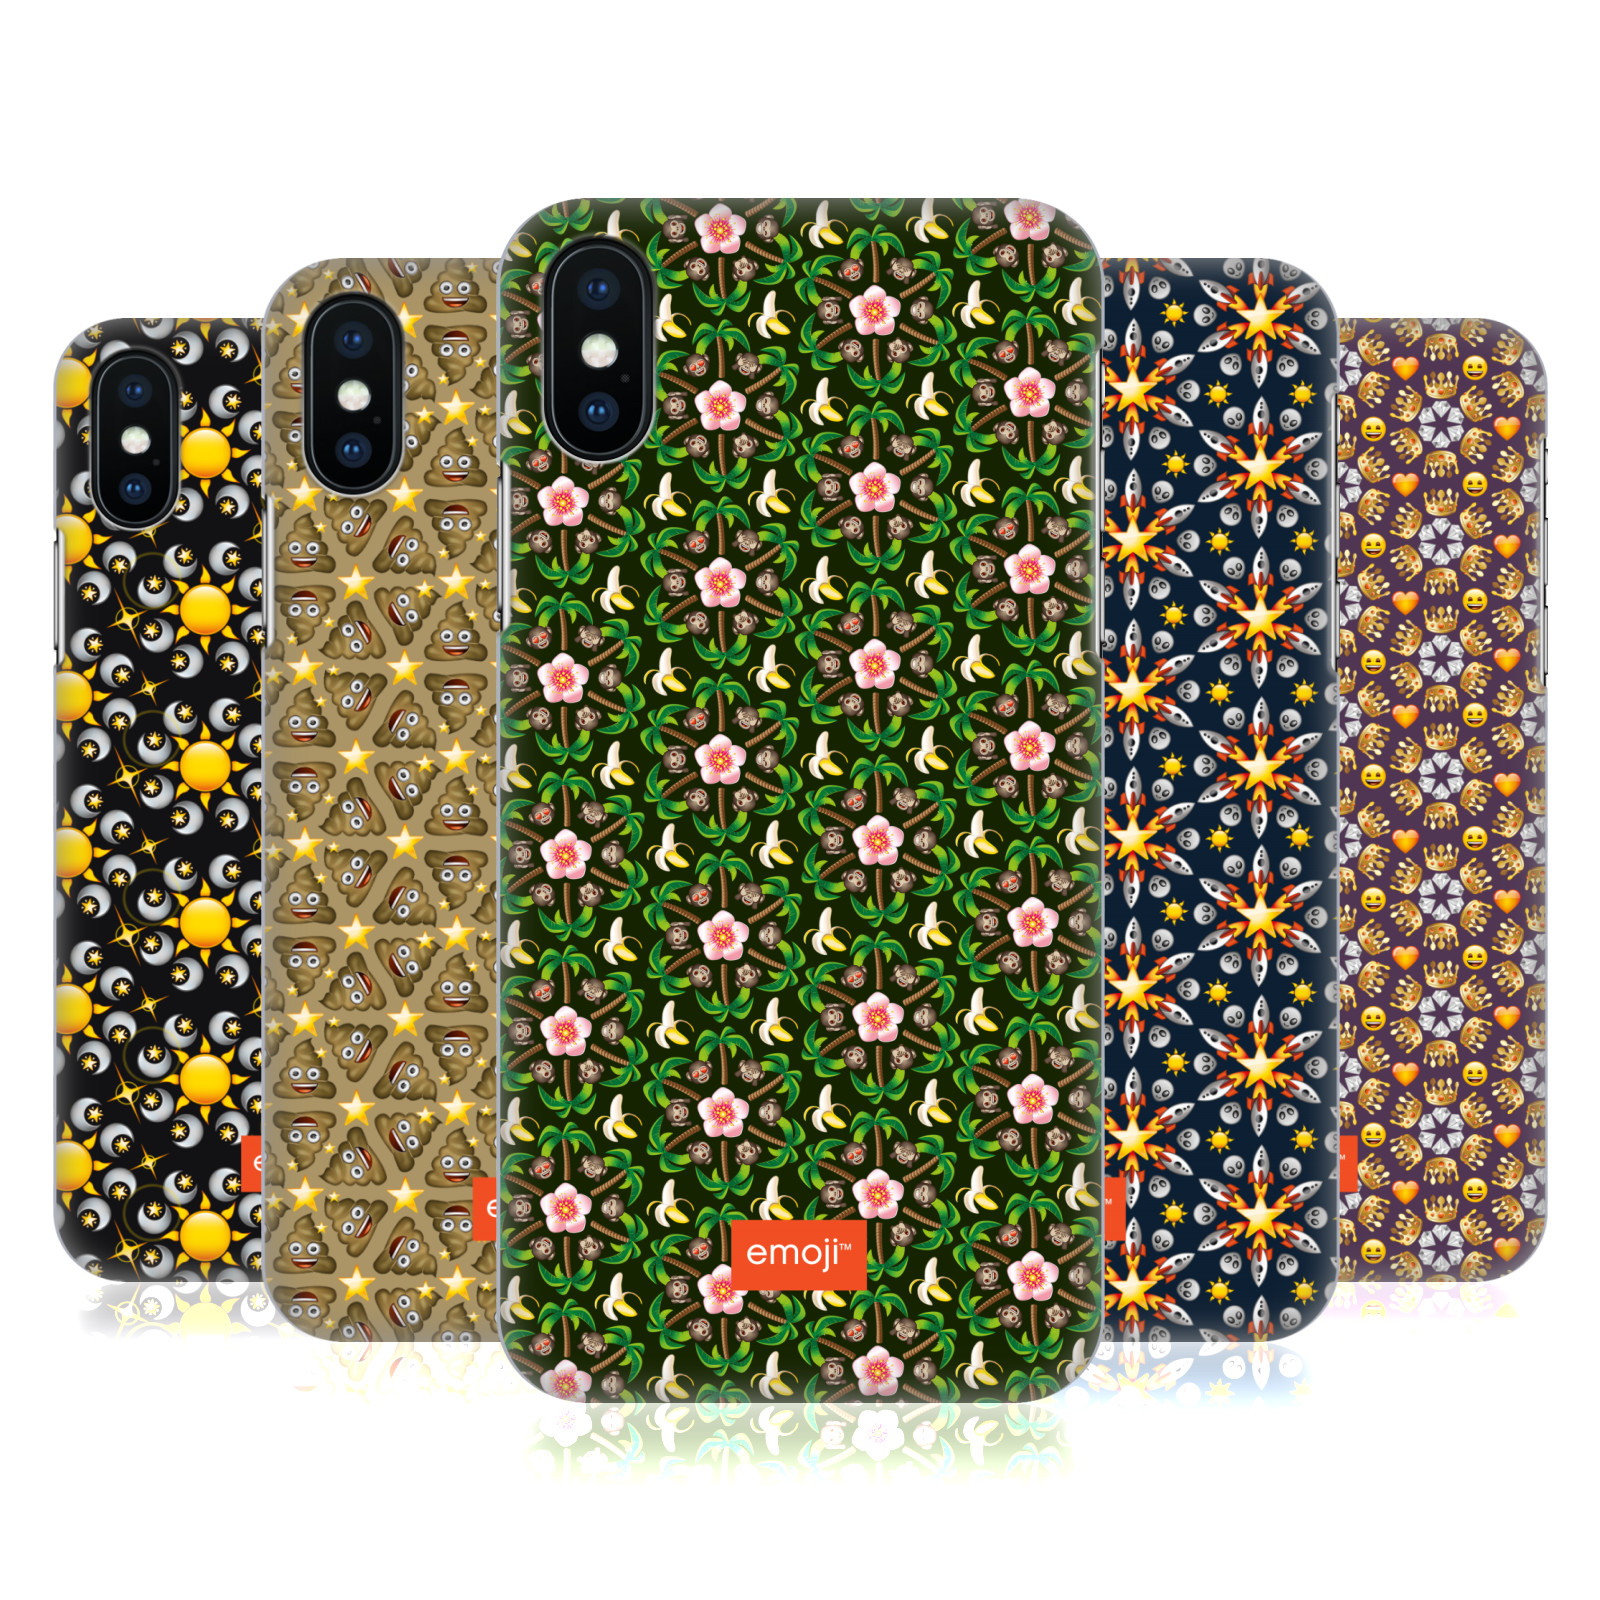 emoji® Floral Patterns